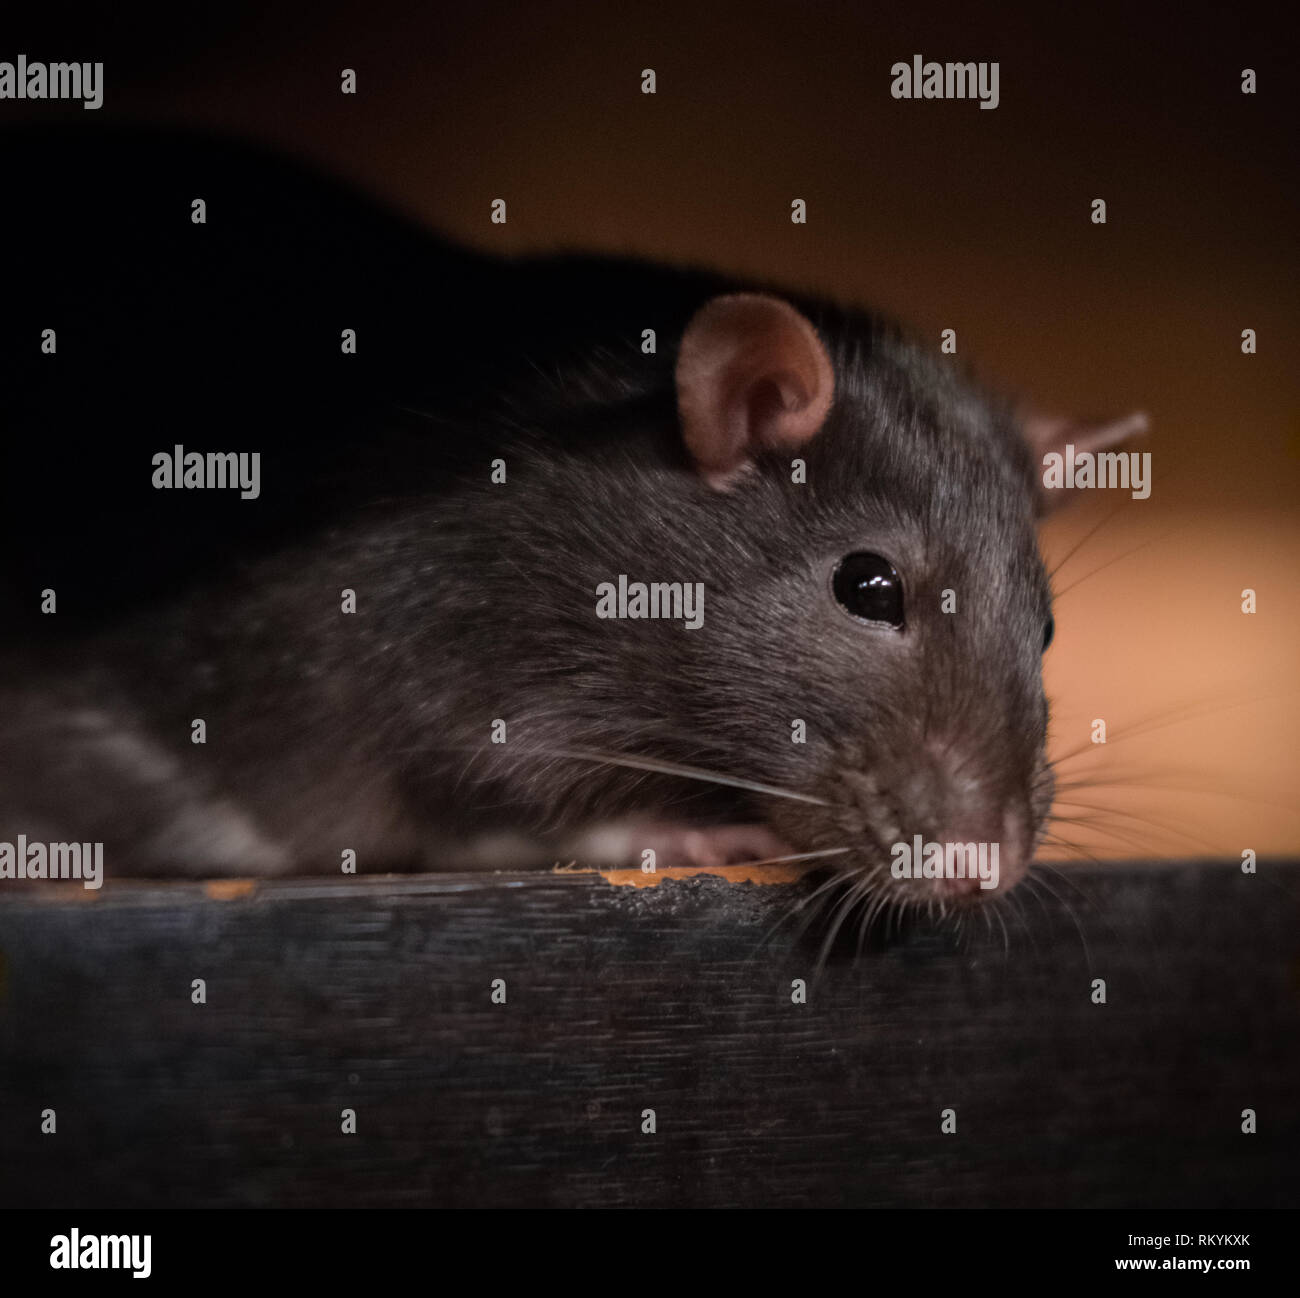 Side view of a domestic pet rat resting on a table - Stock Image